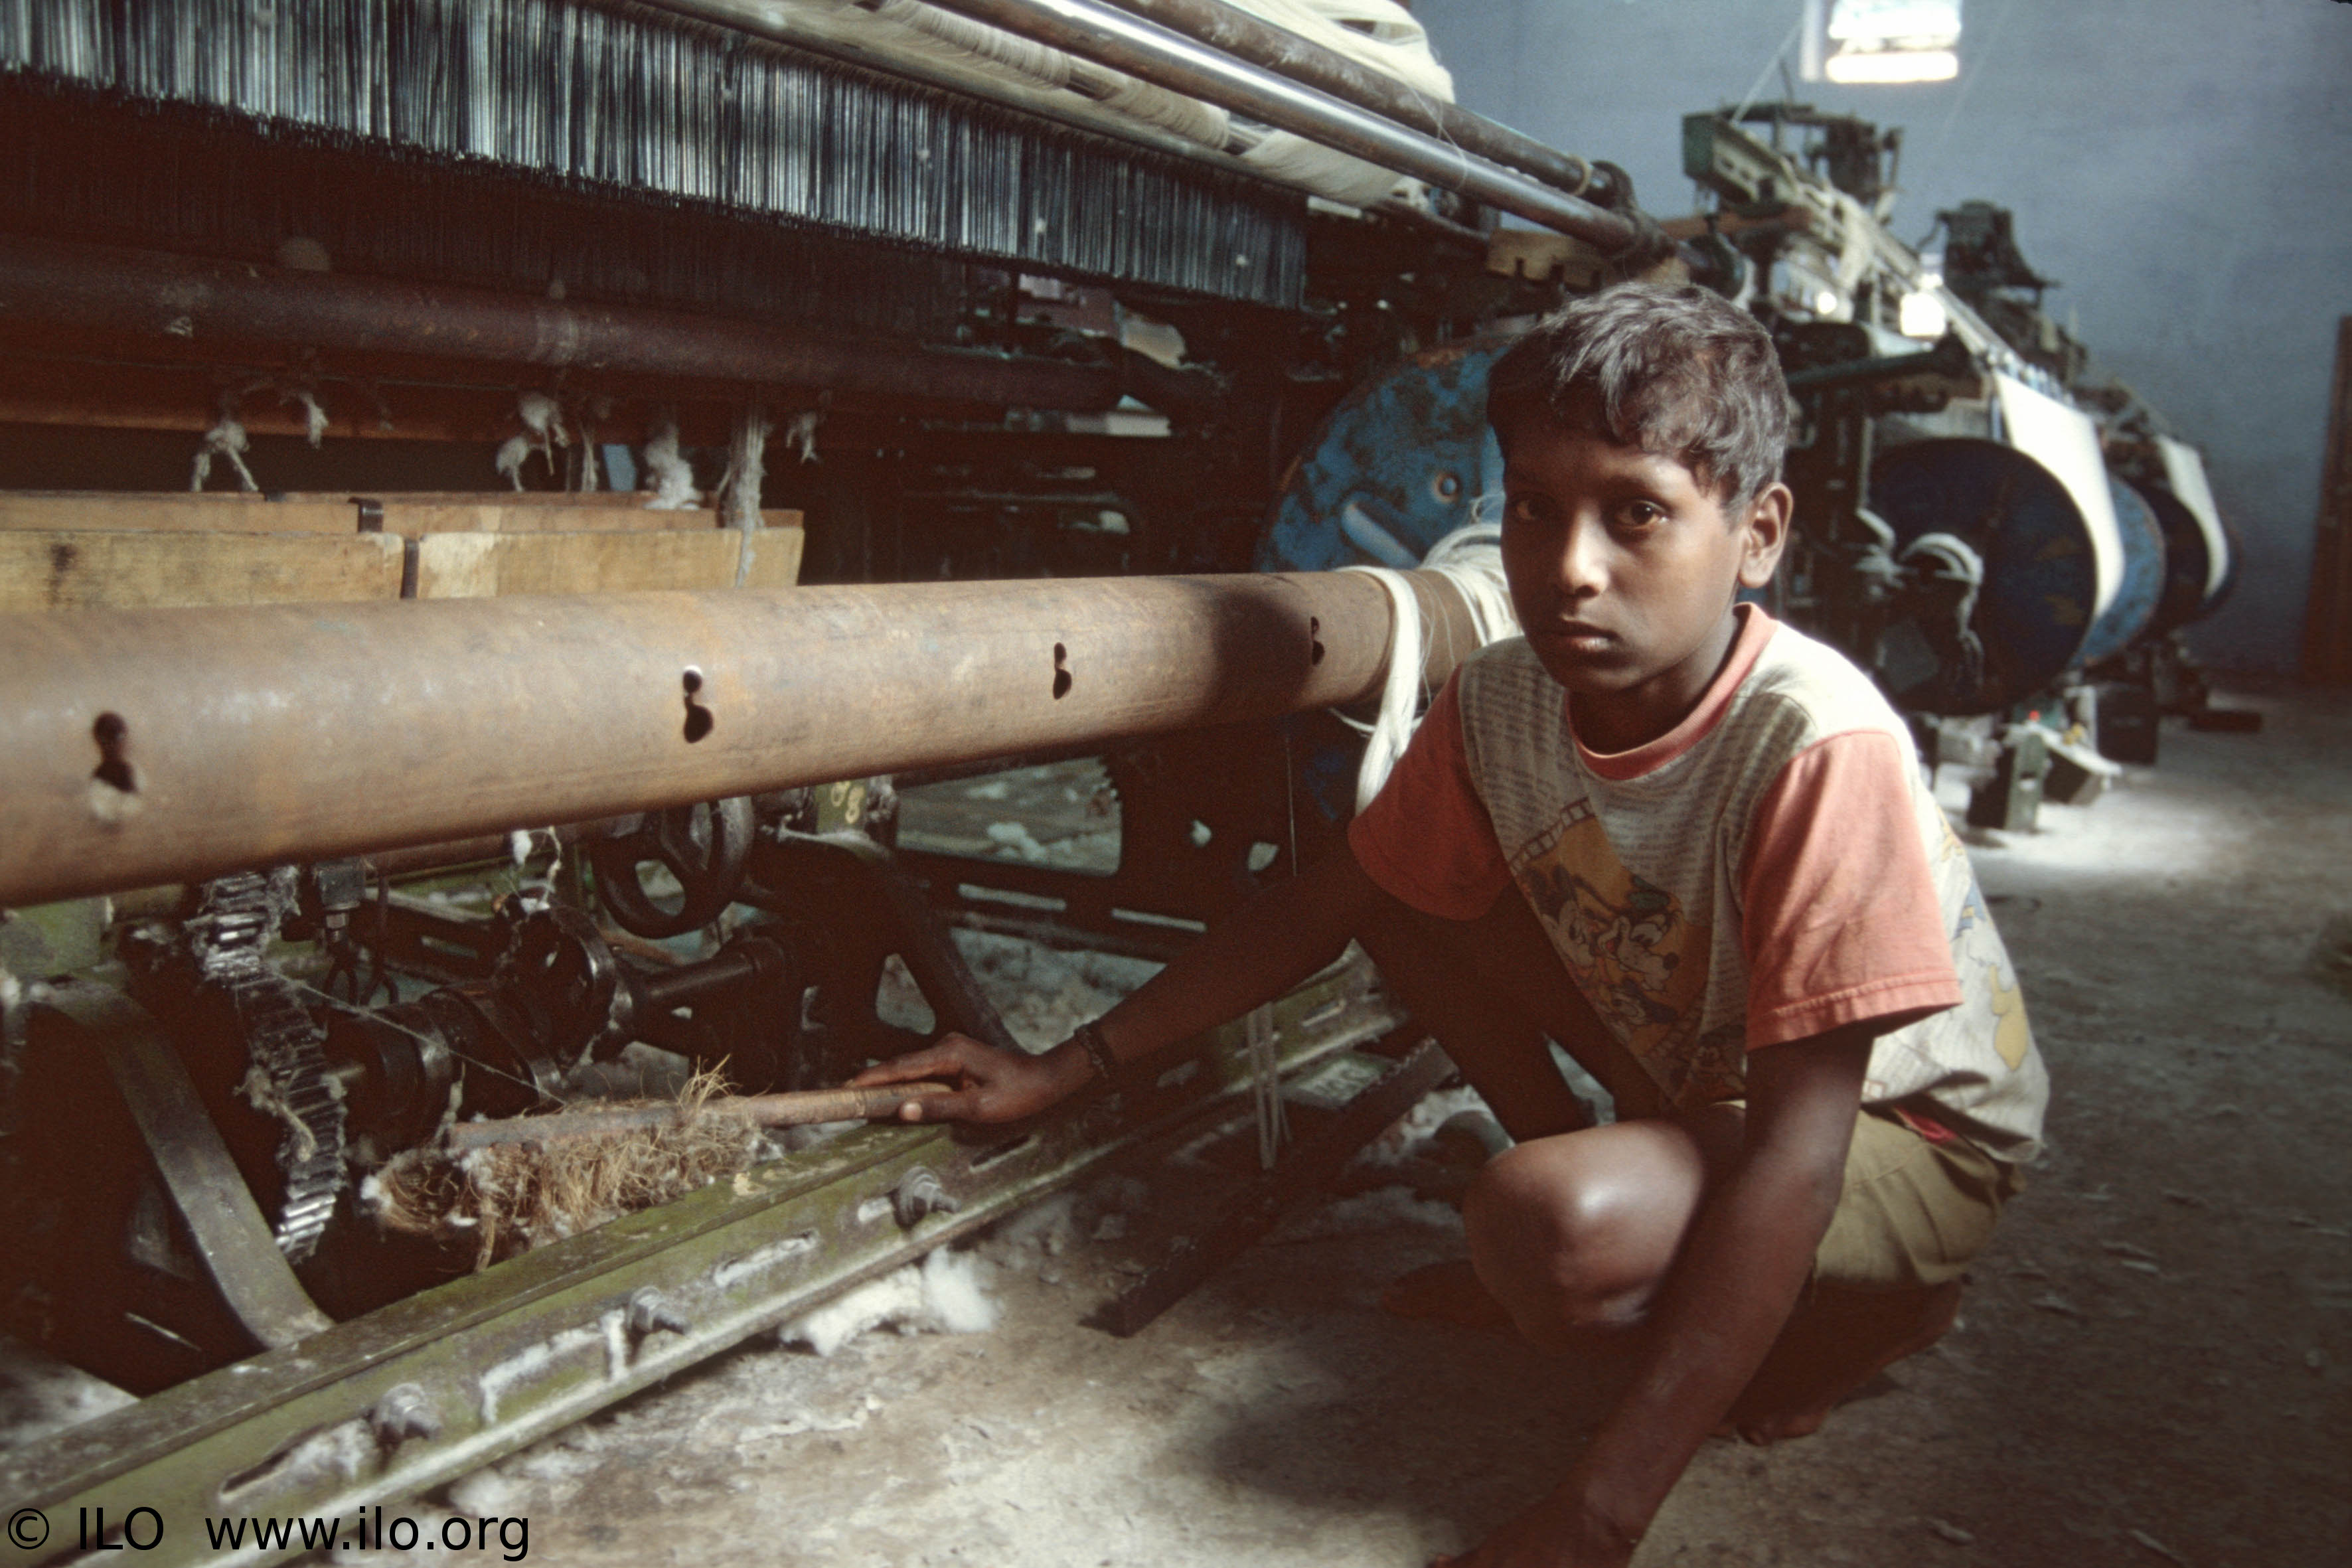 Union Home Minister launches online portal to end child labour exploitation